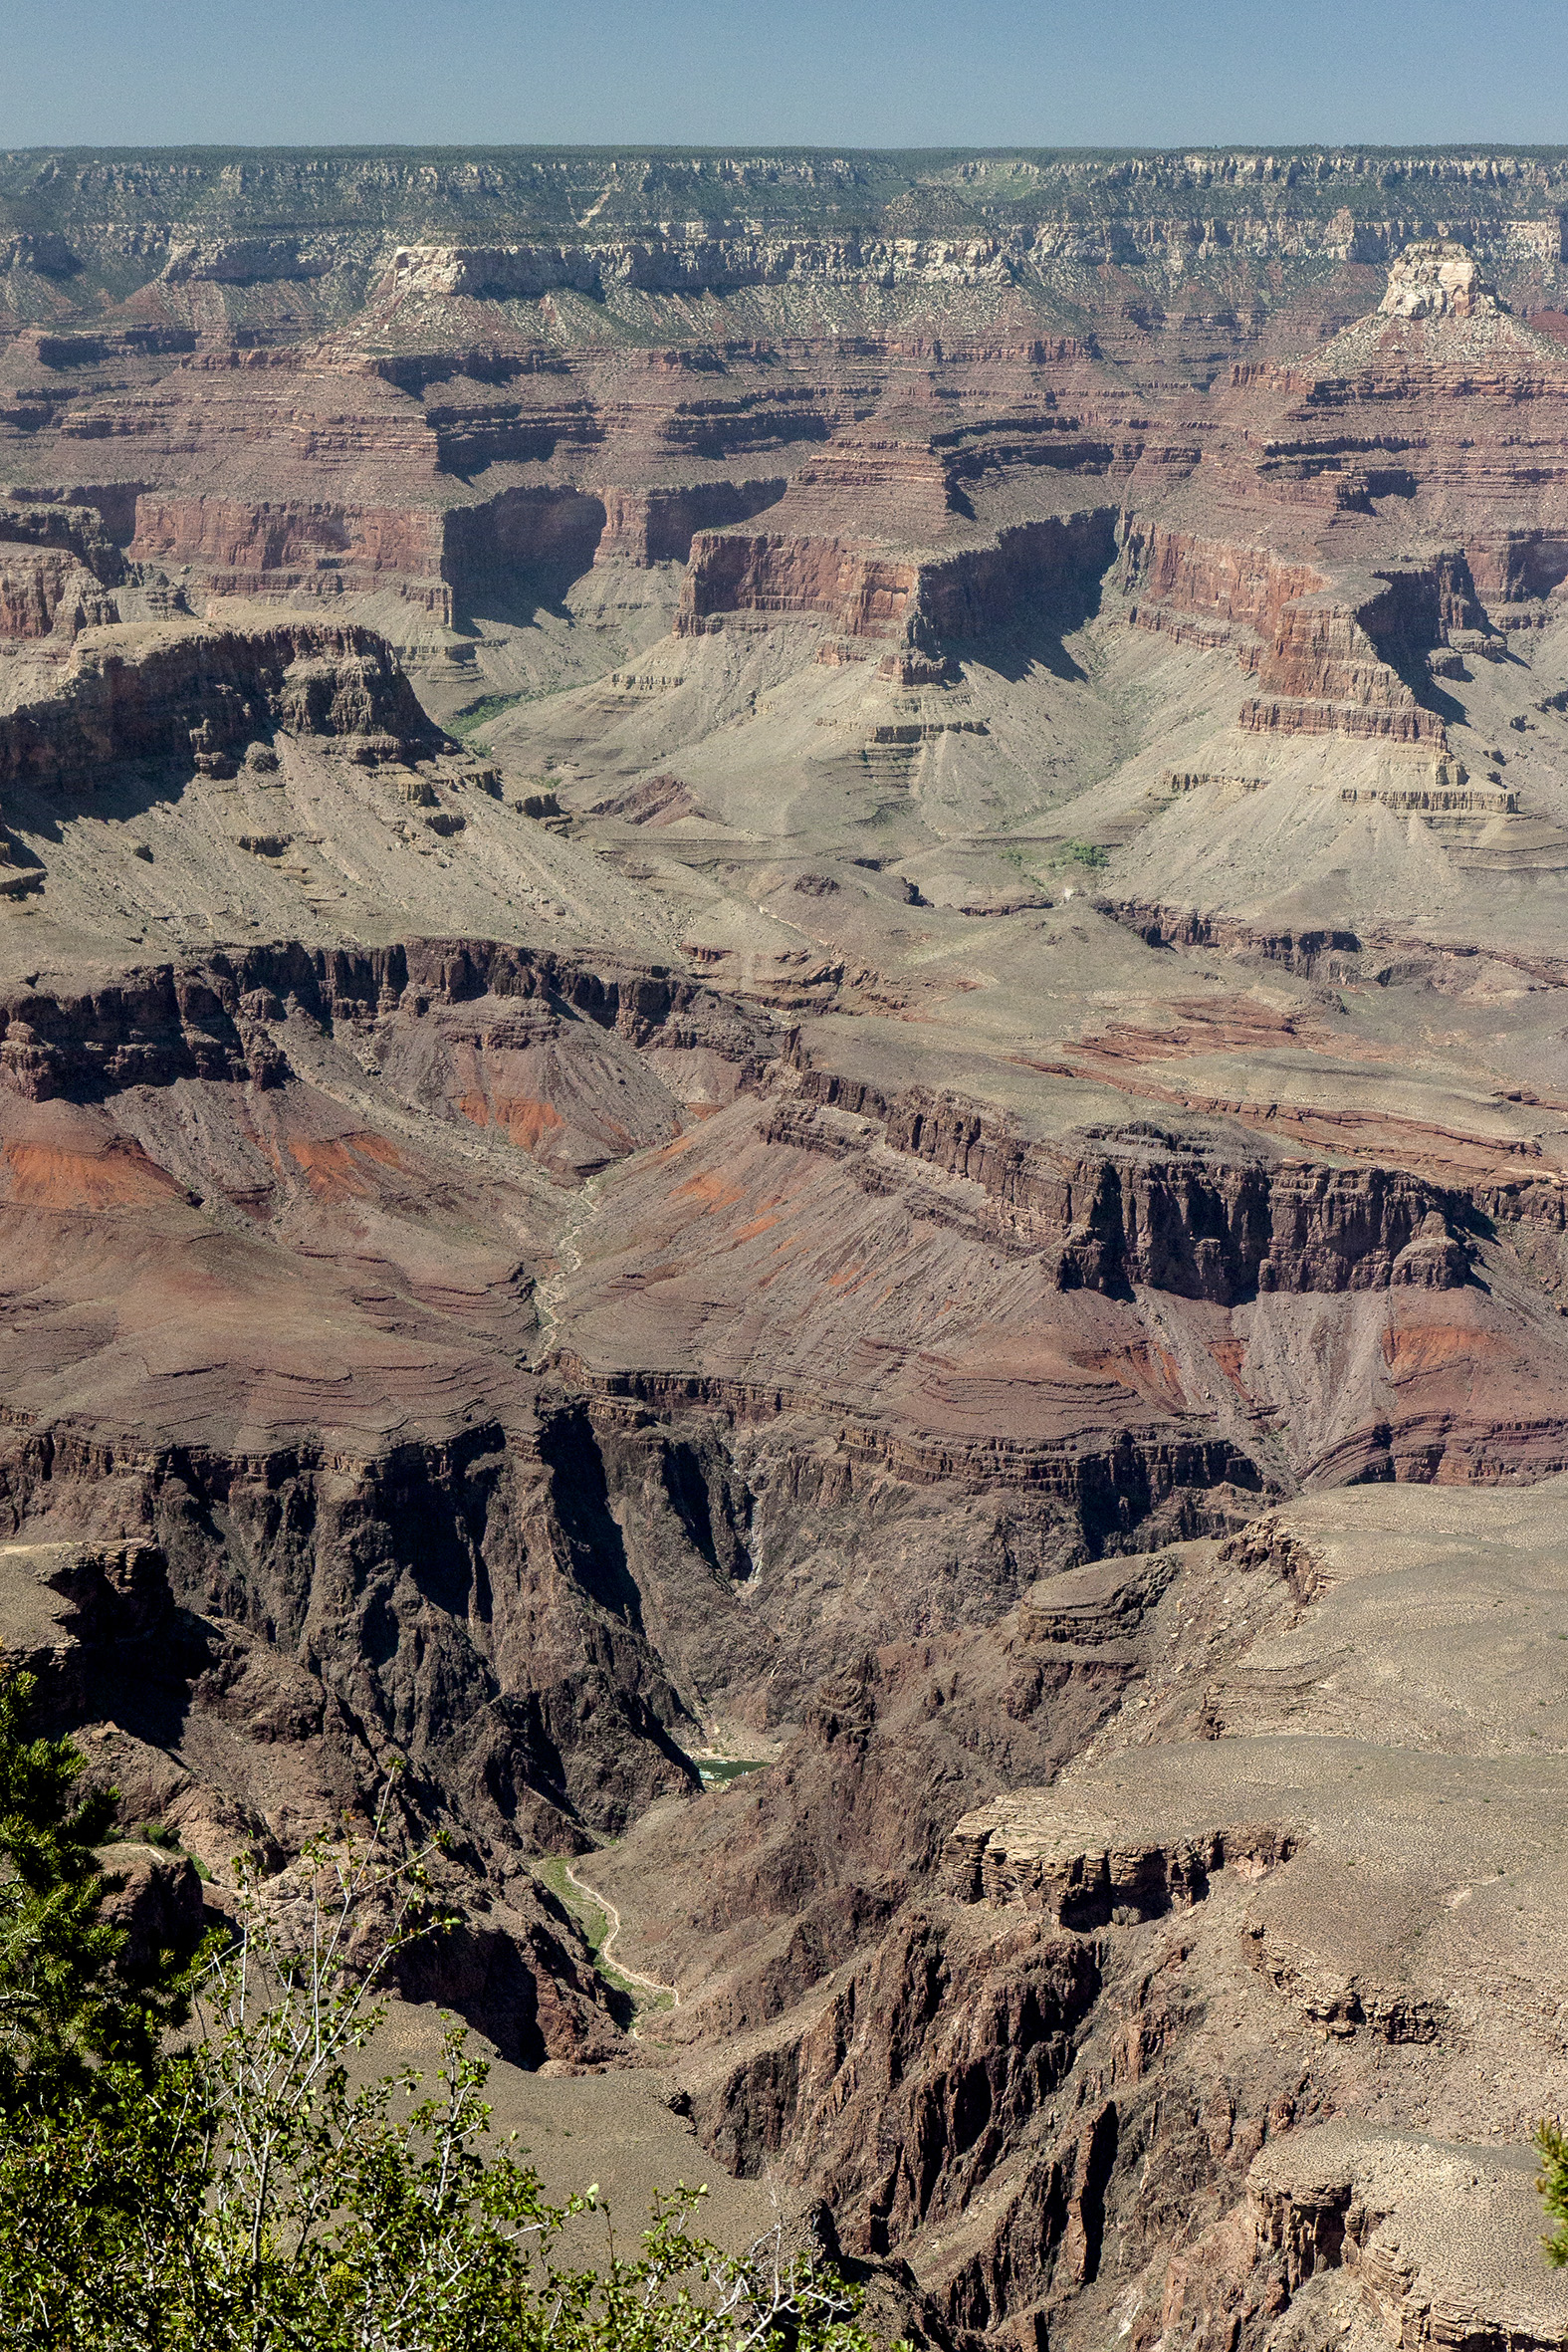 voyages-grand-canyon-usa-ouest-2012-marie-colette-becker-02